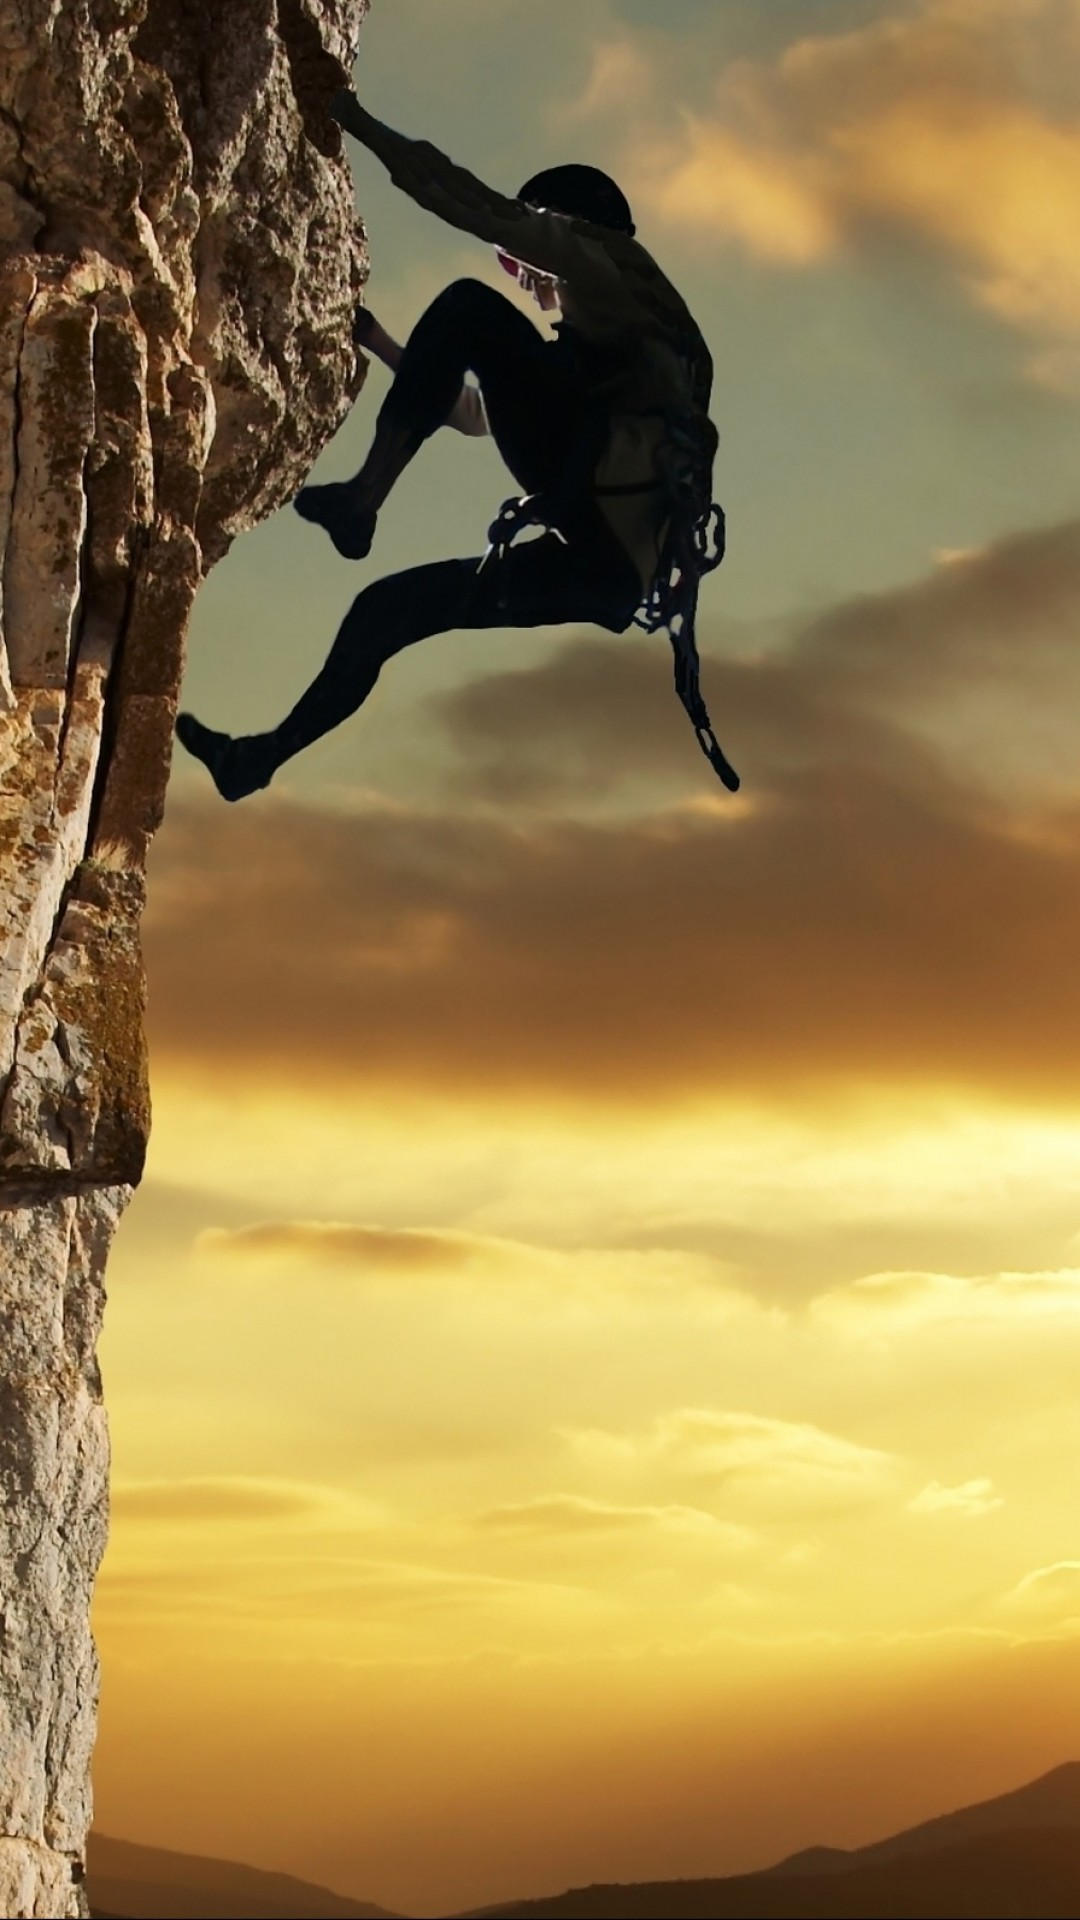 extreme sport wallpapers sports climbing sun hd wallpapertag